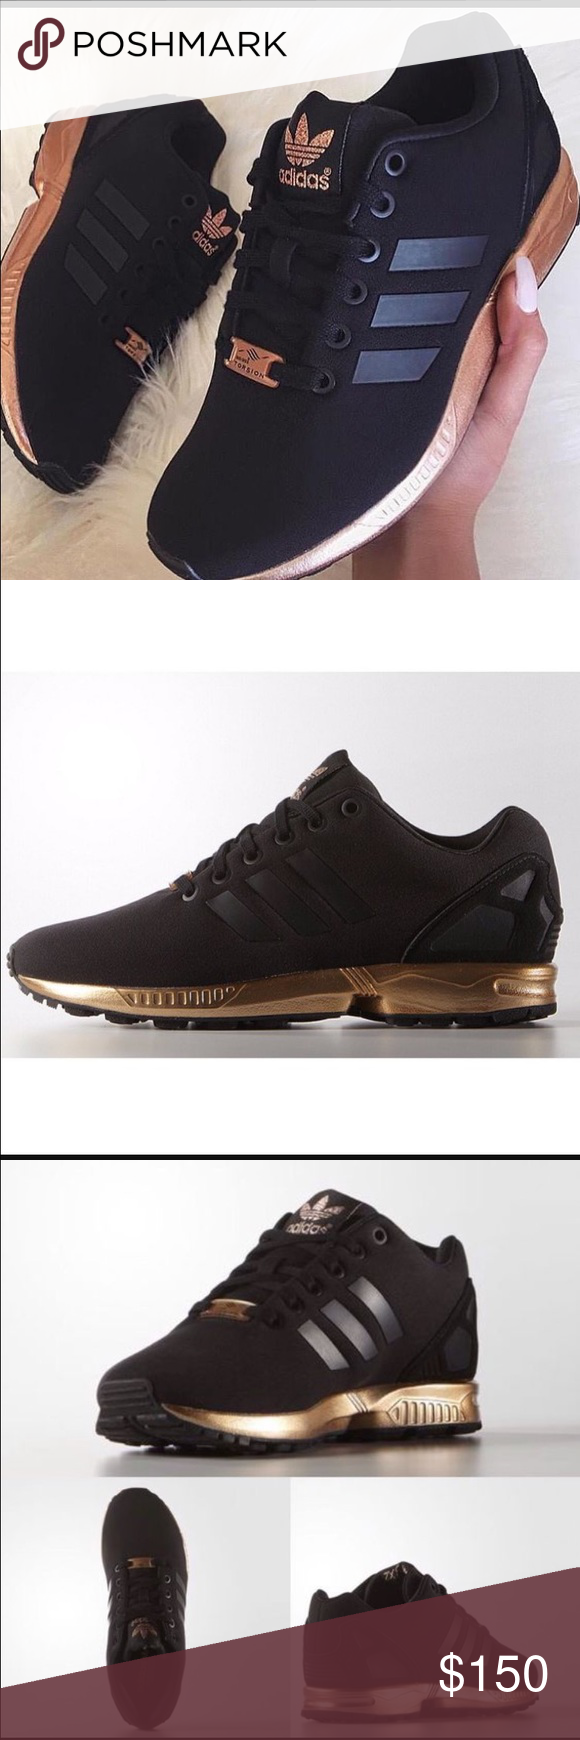 ace59bbed Limited edition Adidas zx flux Black and gold sz6 I will post my own  original pics when I get a chance. I have these shoes in size 6 in women s  but they ...